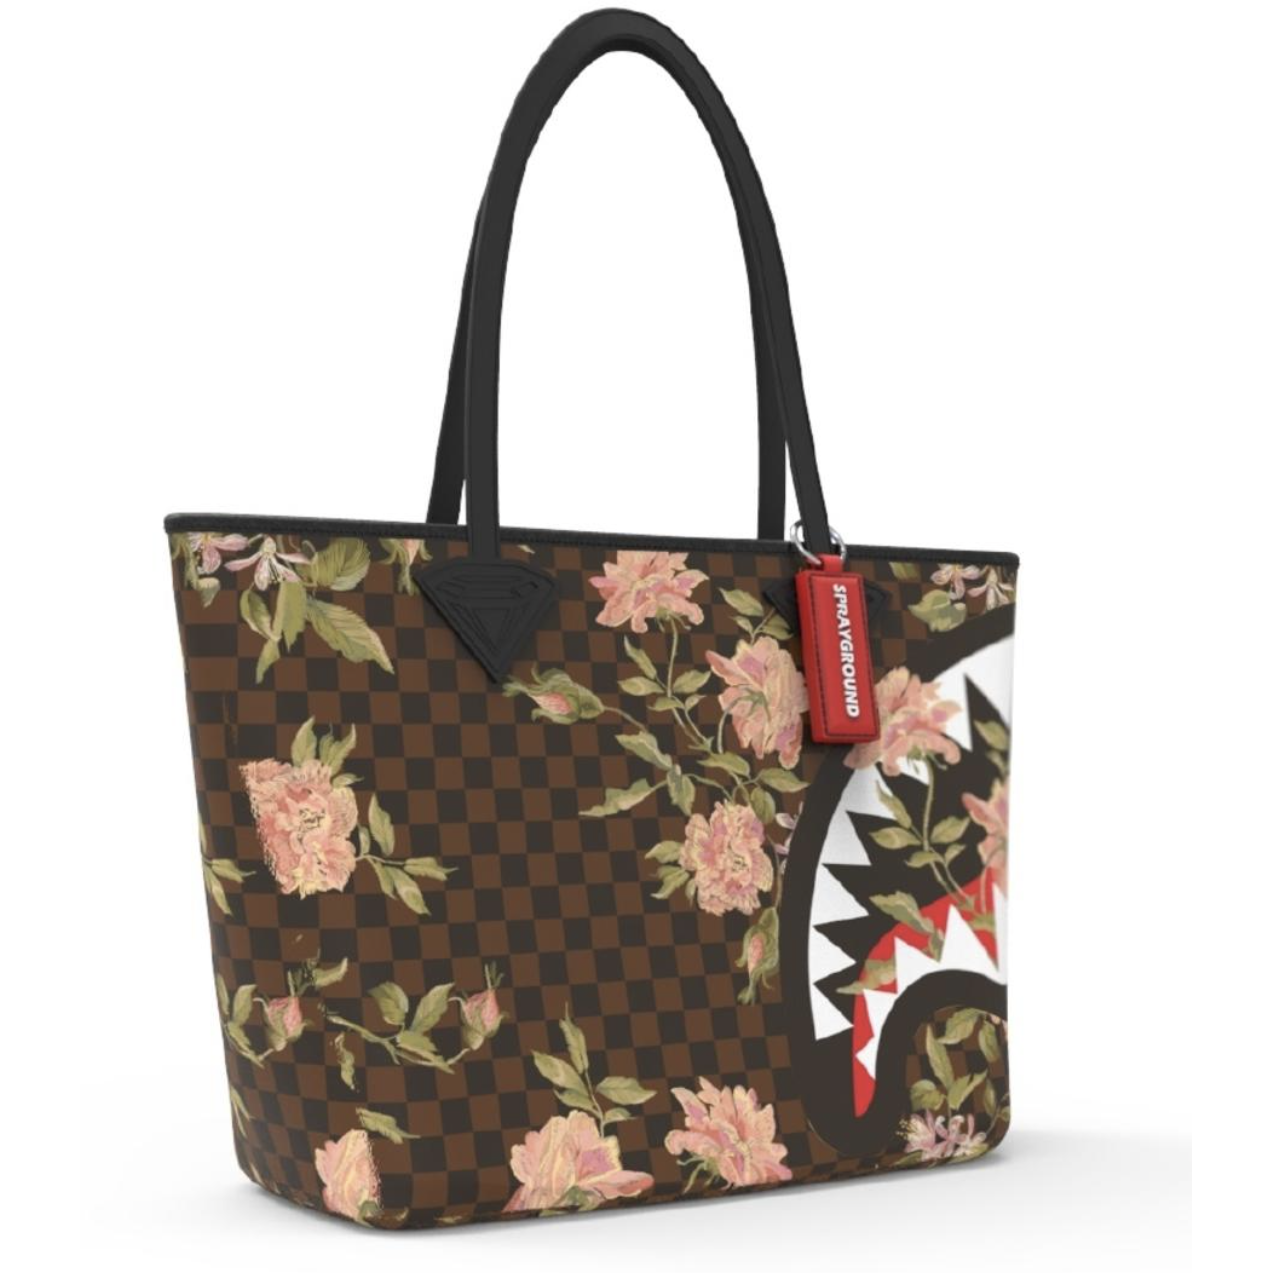 Sprayground Shark Flower Tote Bag